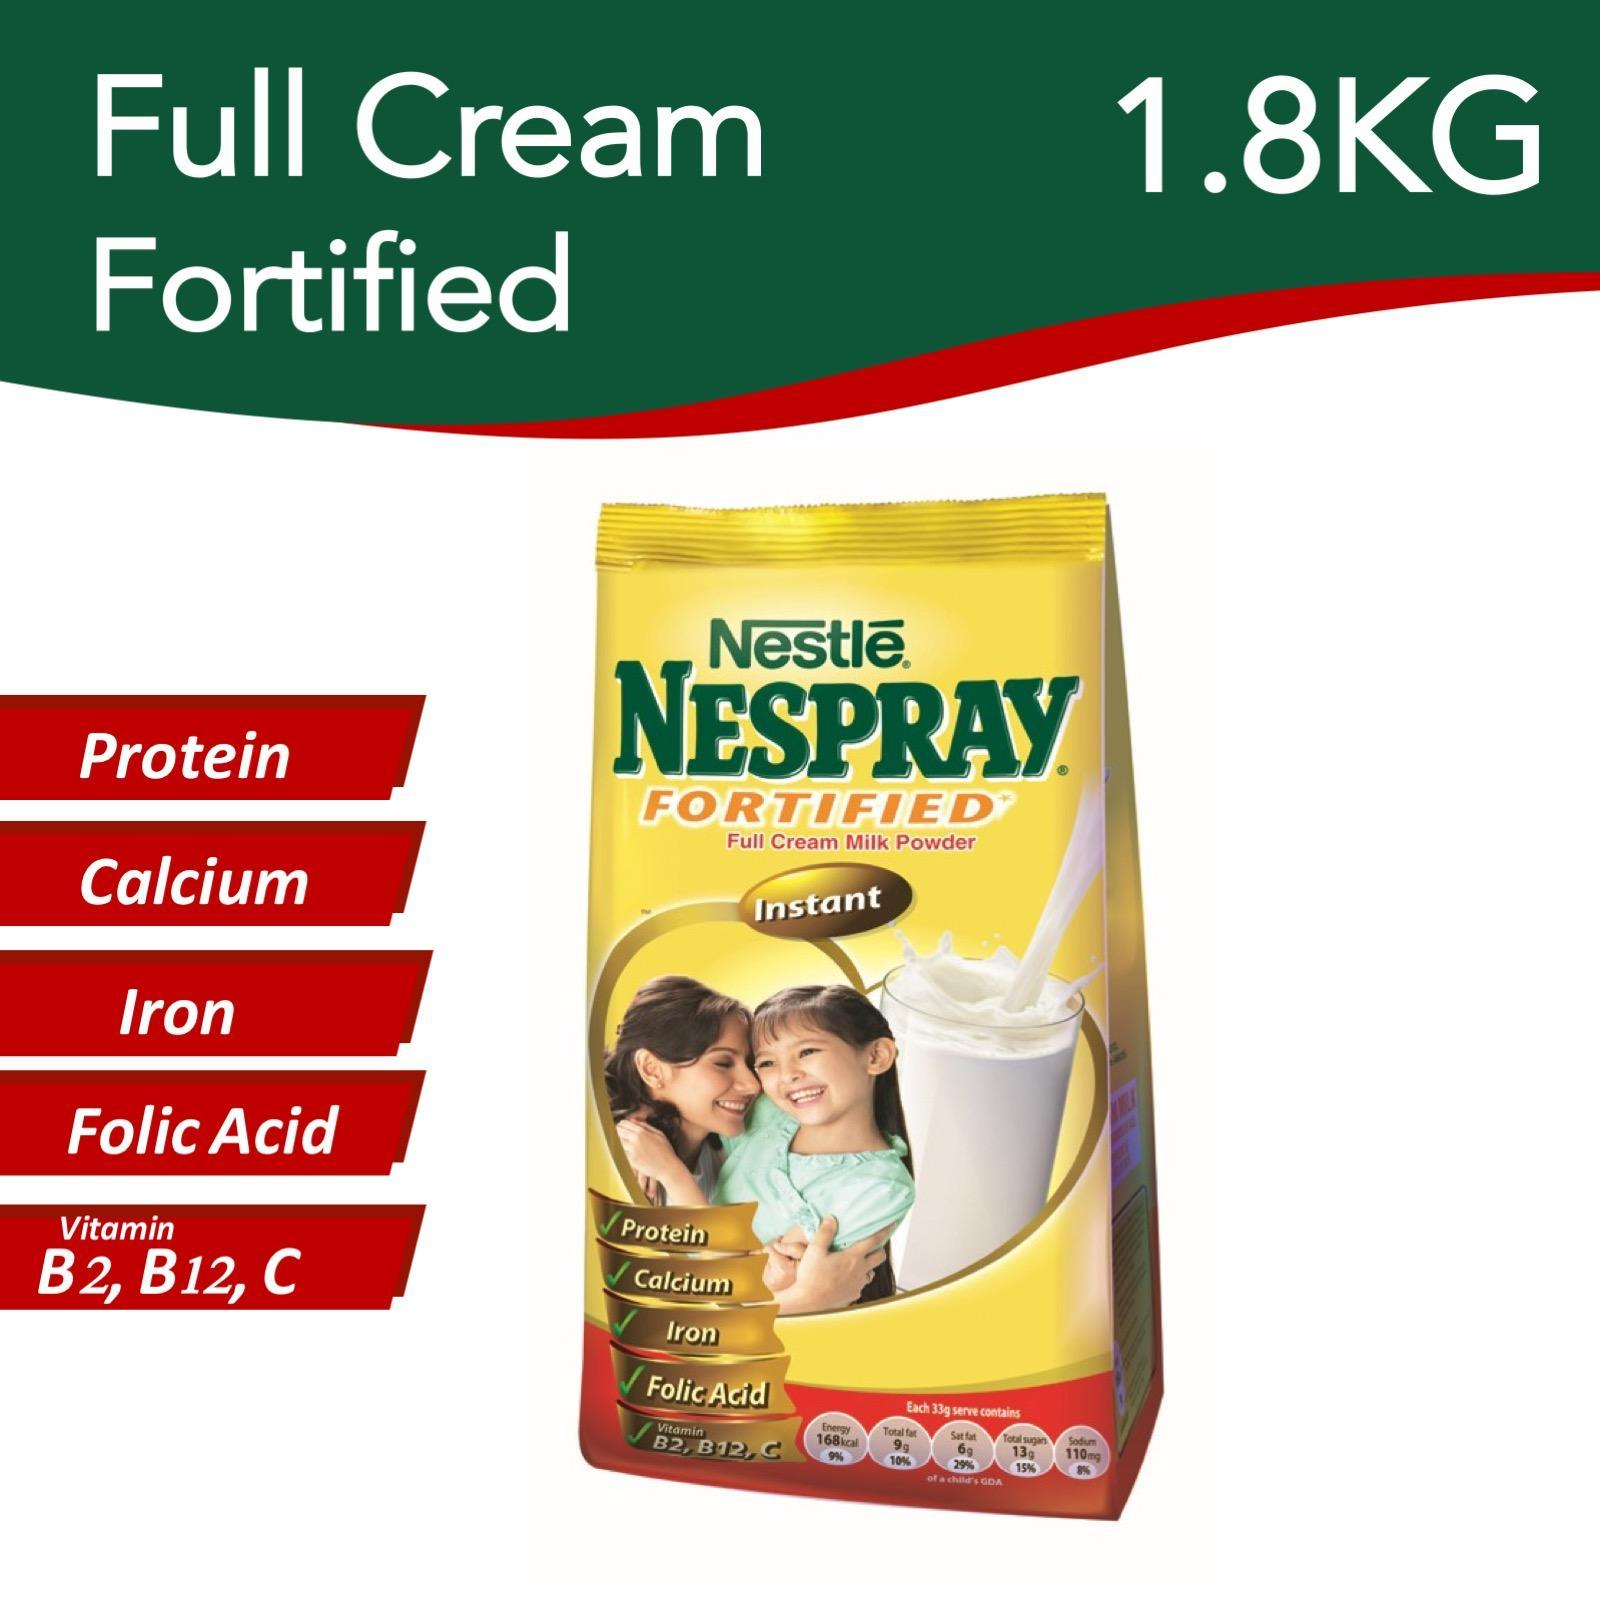 Nestle Nespray Instant Fortified Full Cream Milk Powder